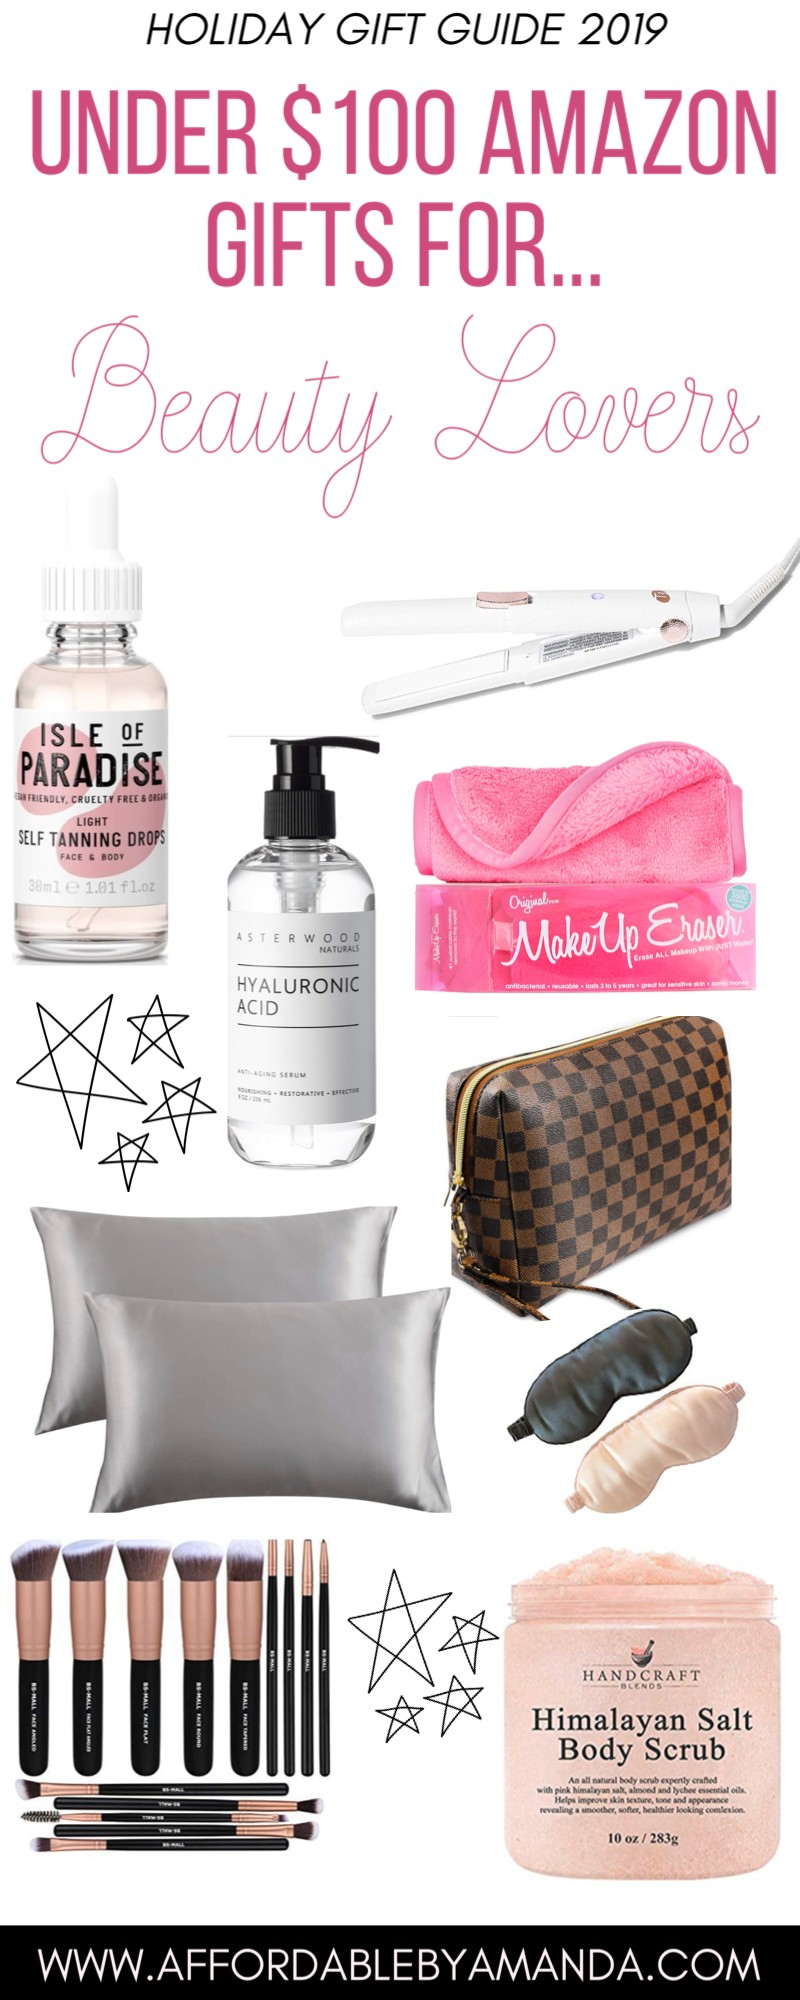 Holiday Gift Guide: Amazon Gifts for Beauty Lovers Under $100   Affordable by Amanda   Gifts for Beauty Lovers for the Holidays 2019